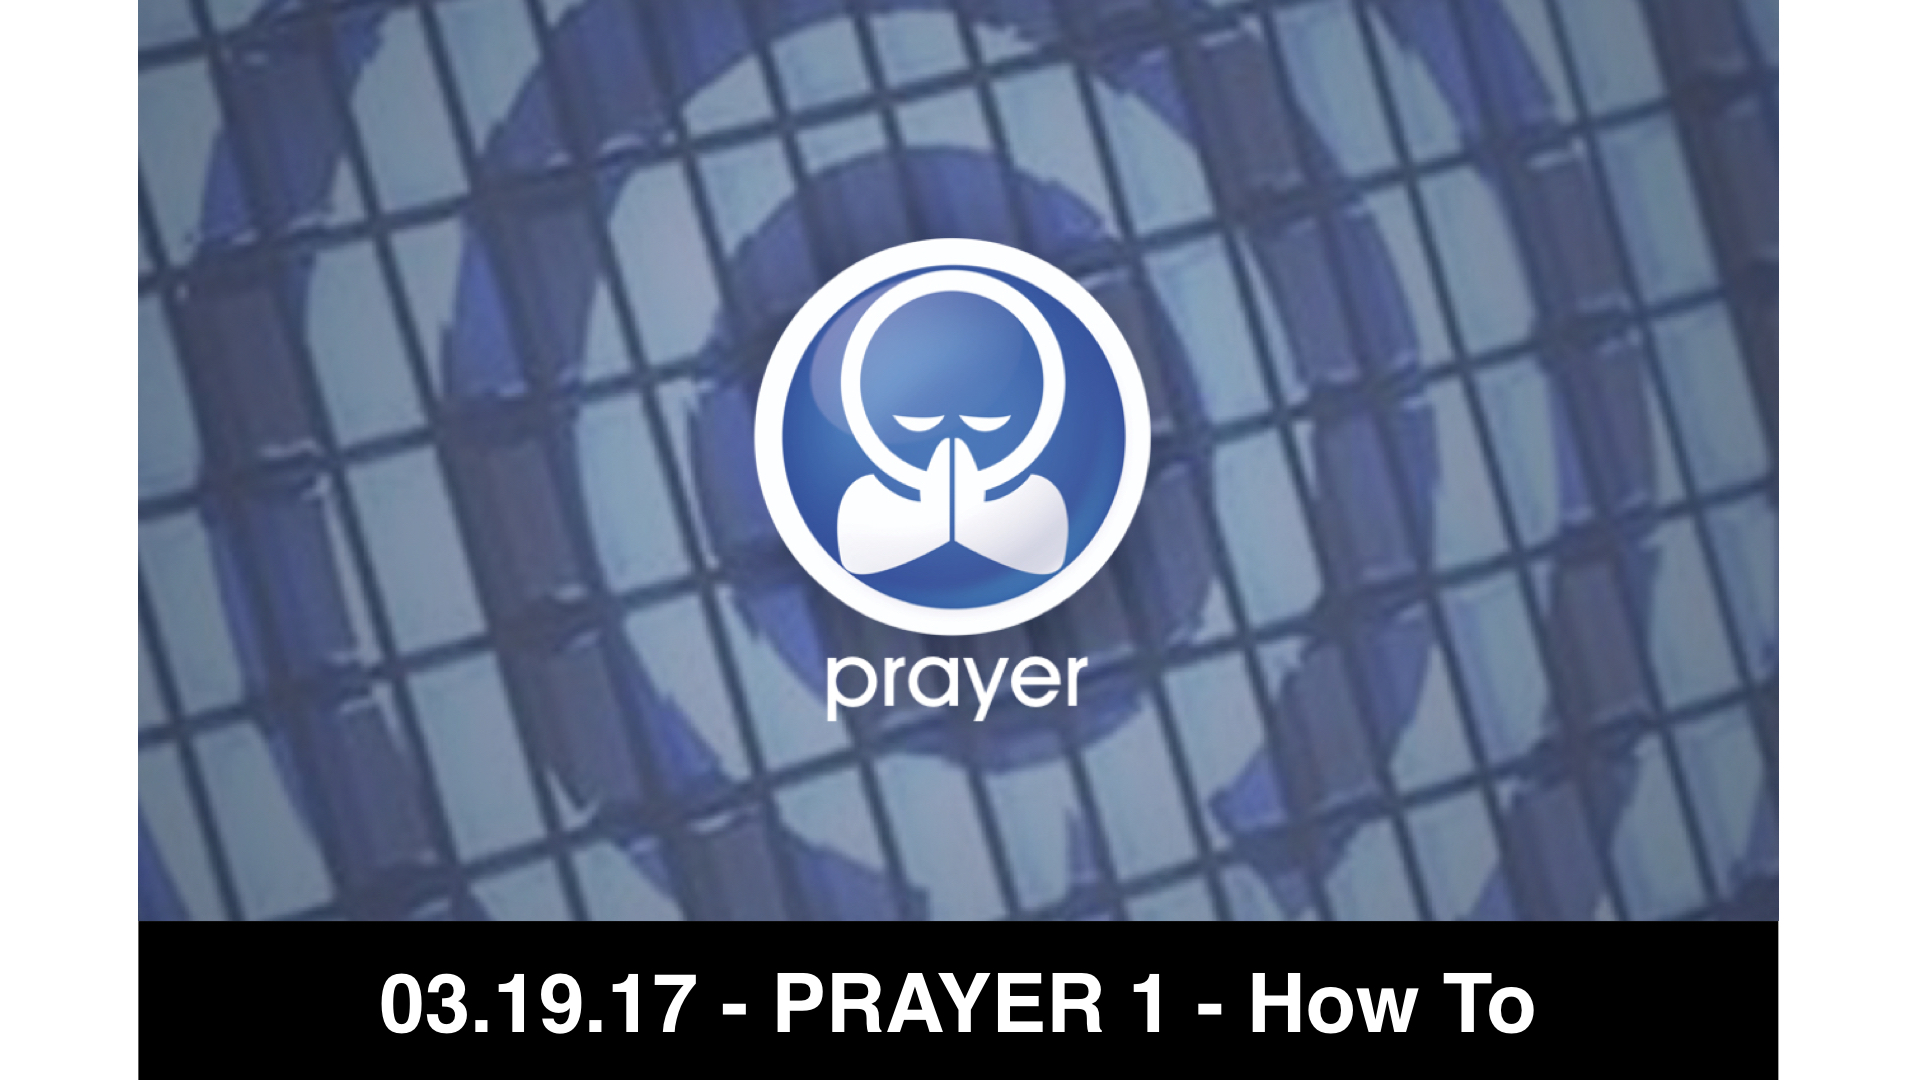 03.19.17 - PRAYER 1 - How To